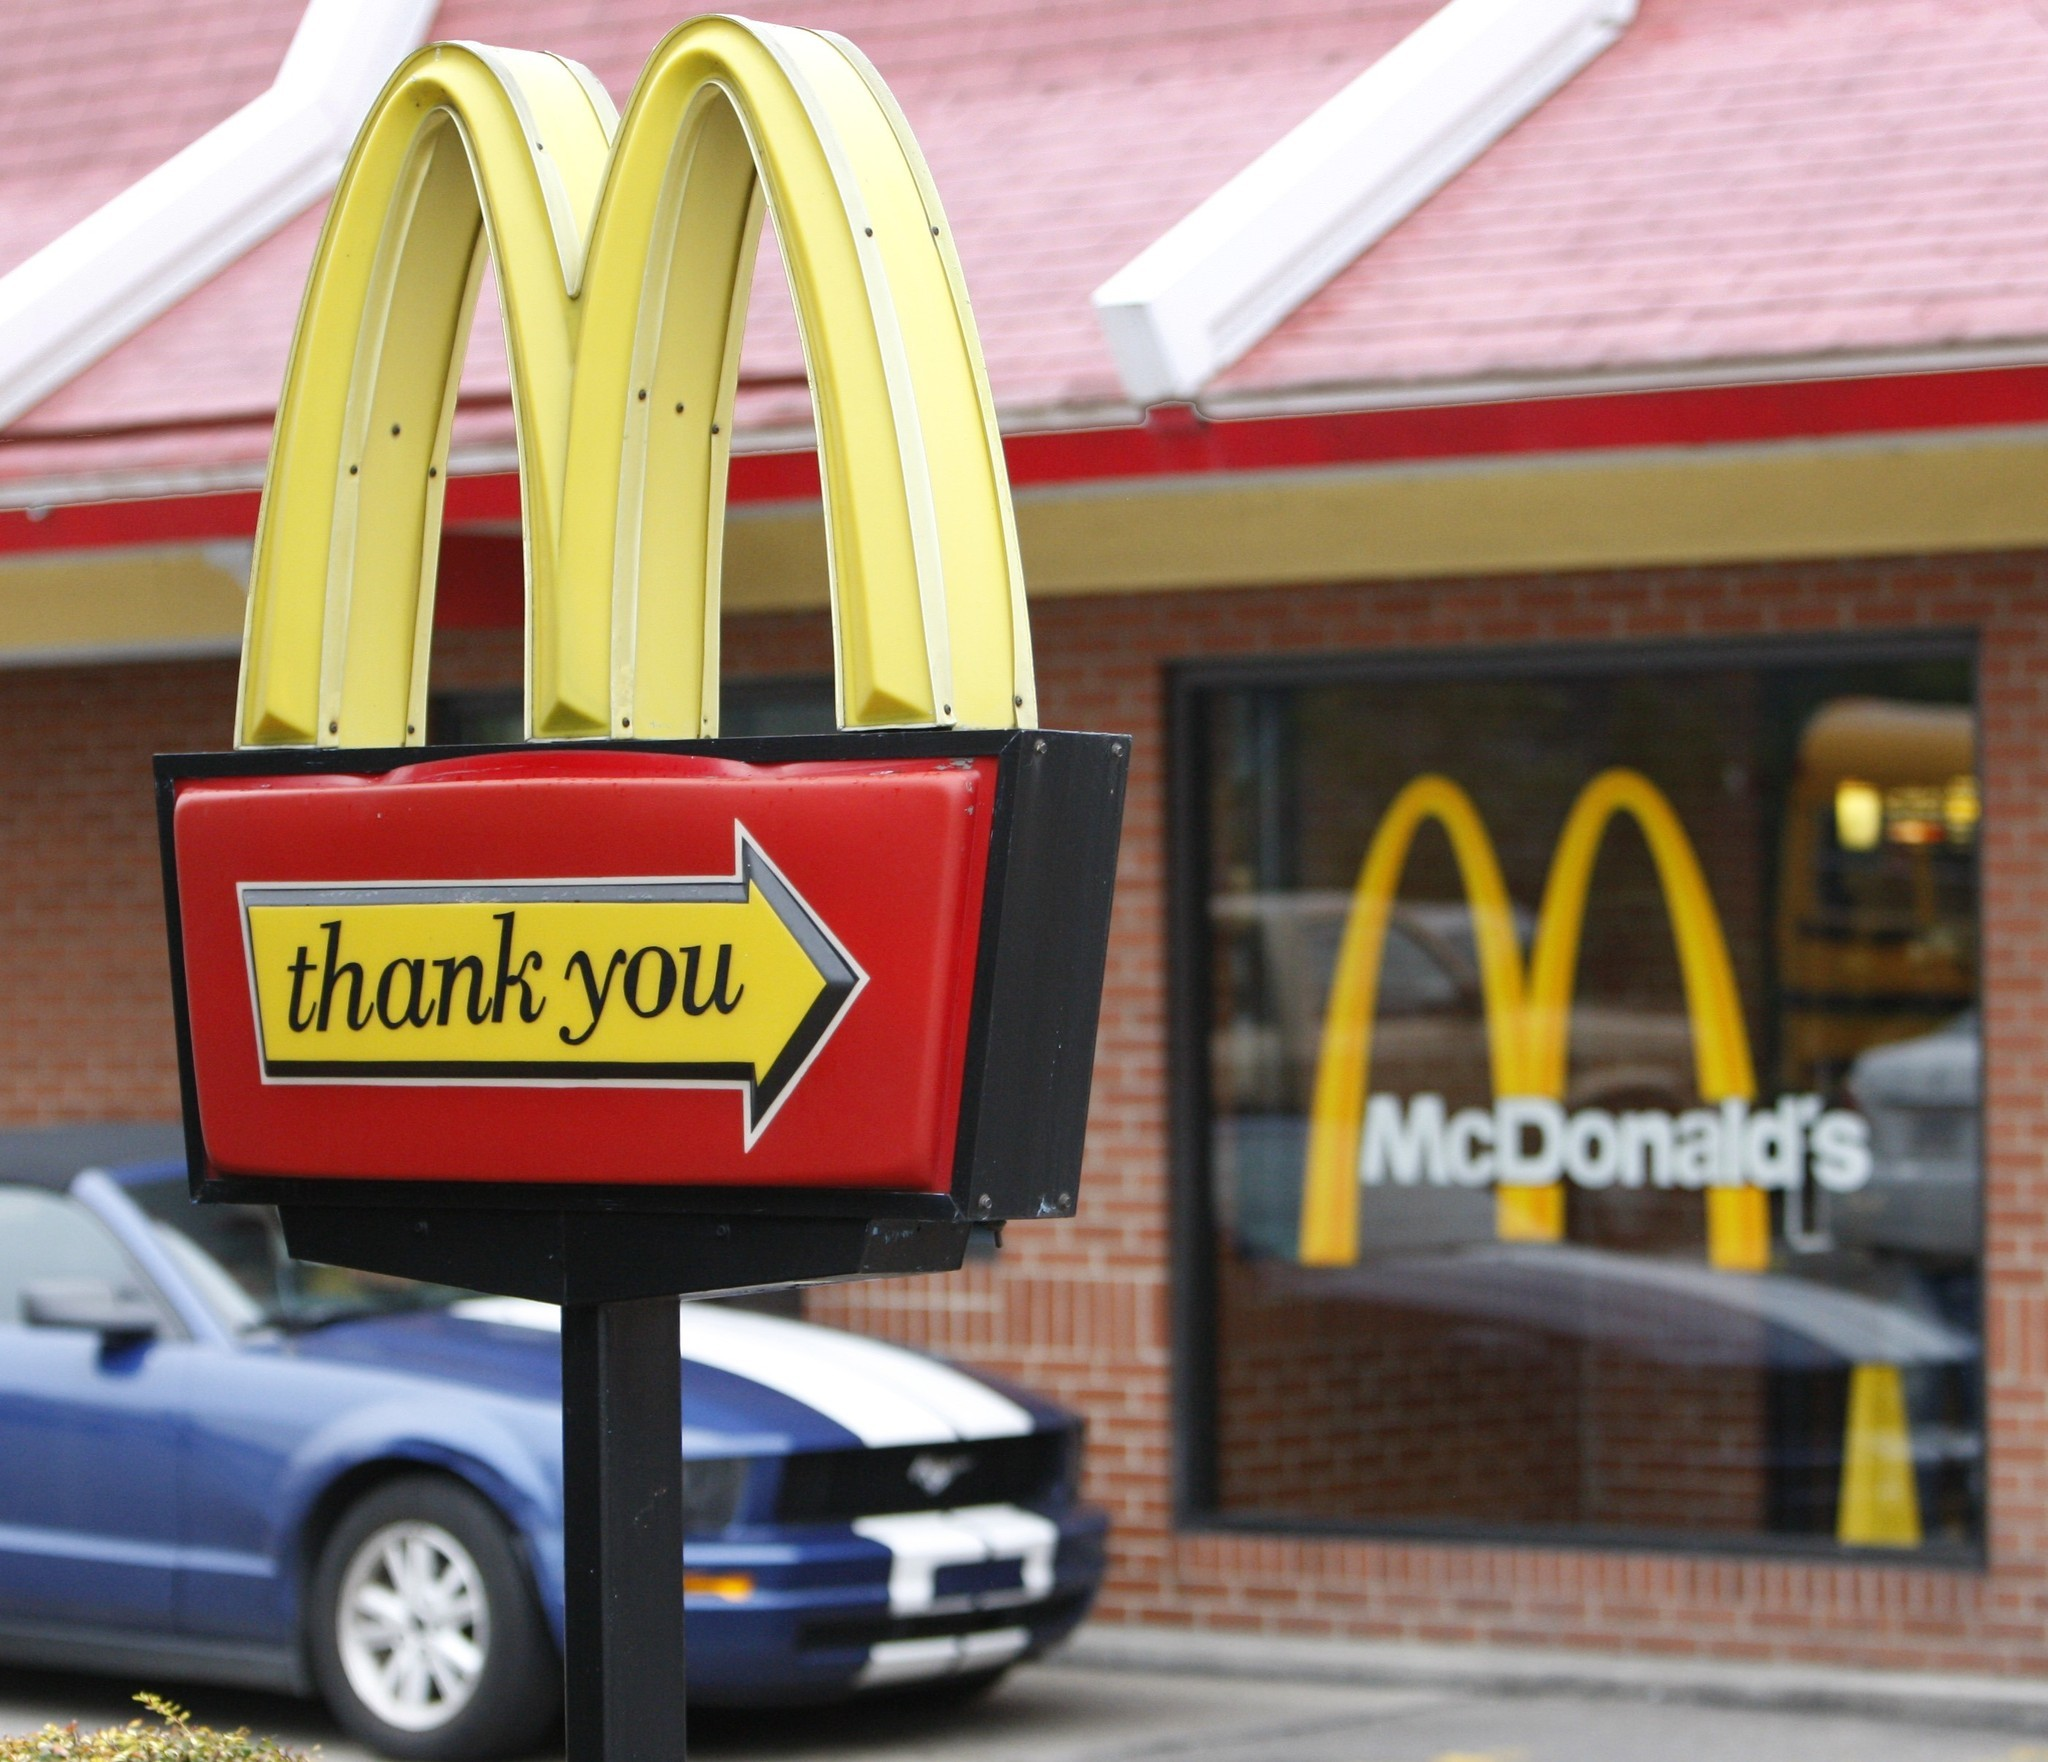 McDonald's CEO: Why We're Raising Wages